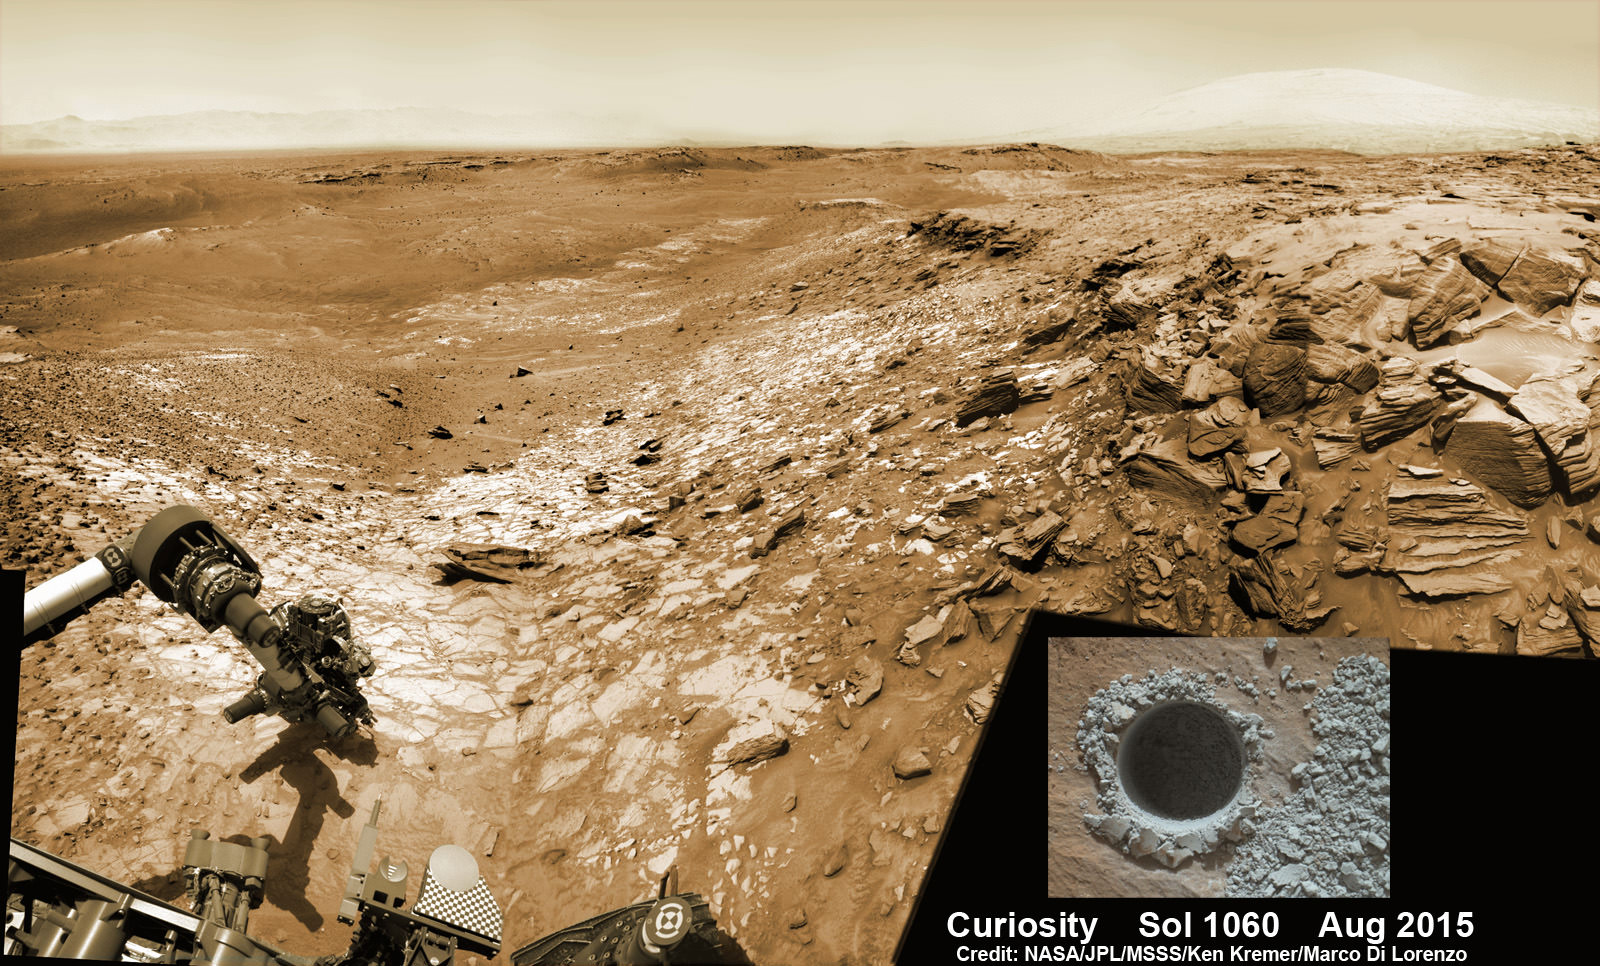 Image of Curiosity's robotic arm drilling at